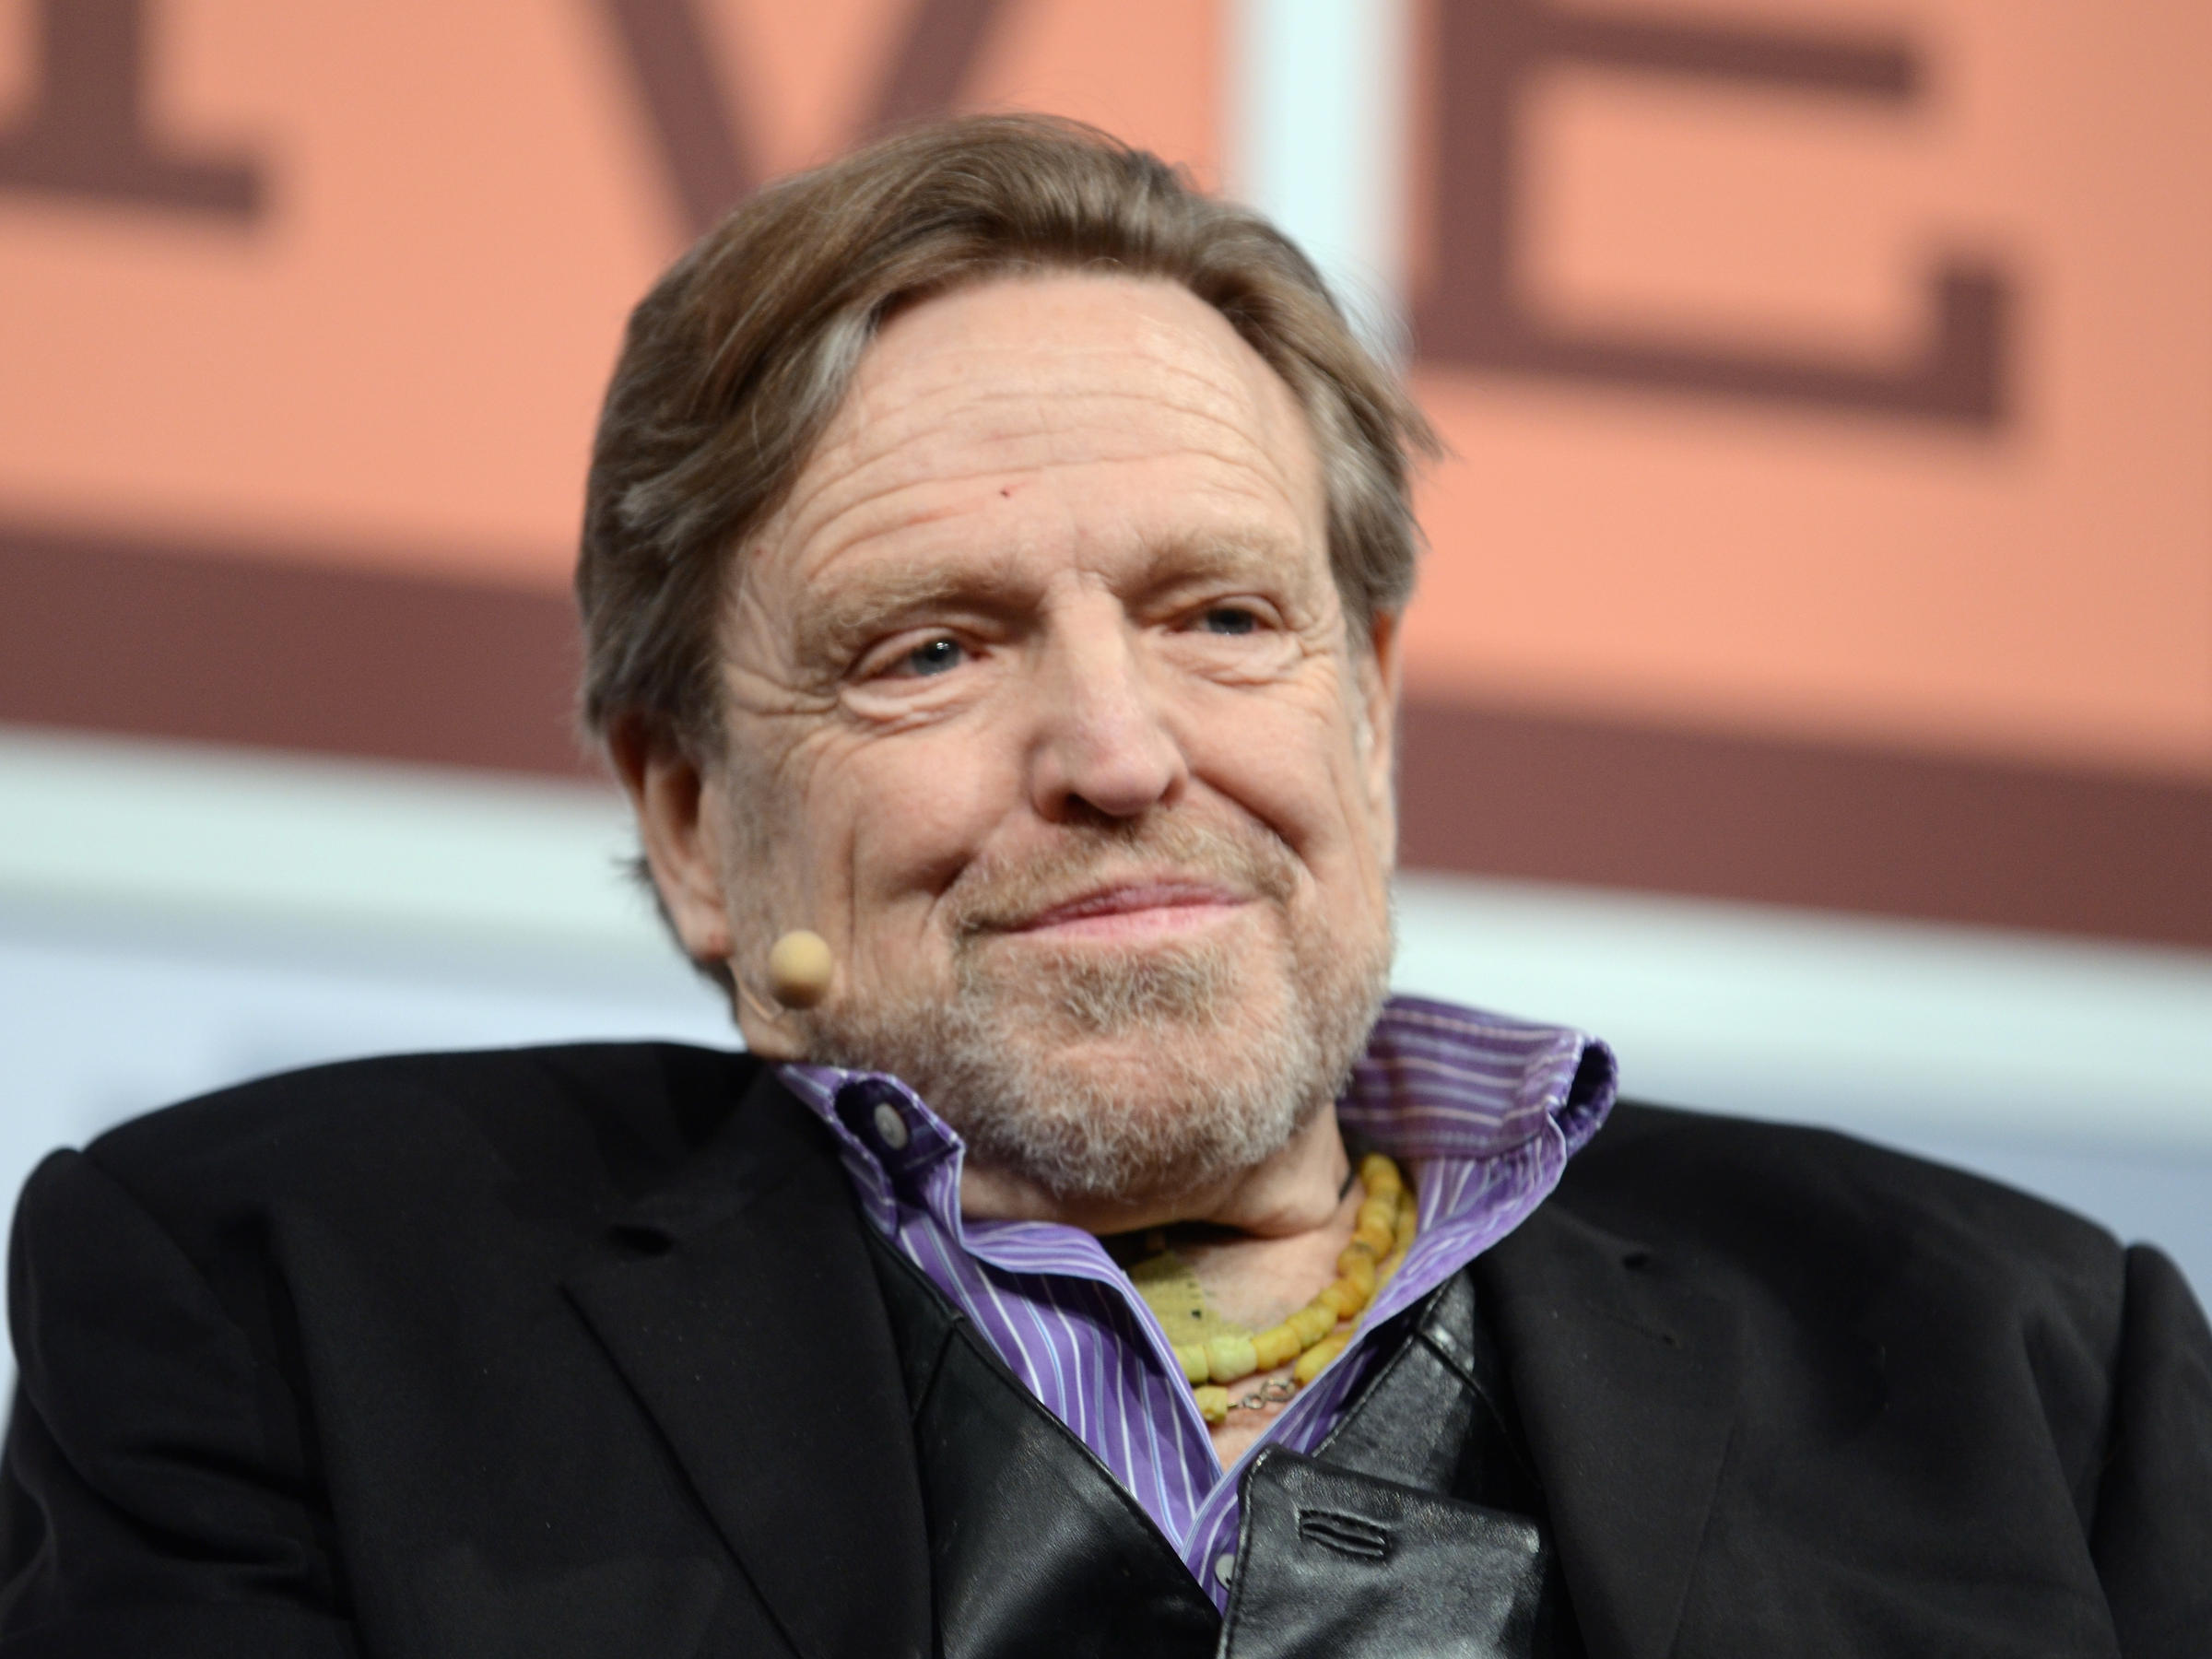 Internet pioneer and activist John Perry Barlow dies at 70